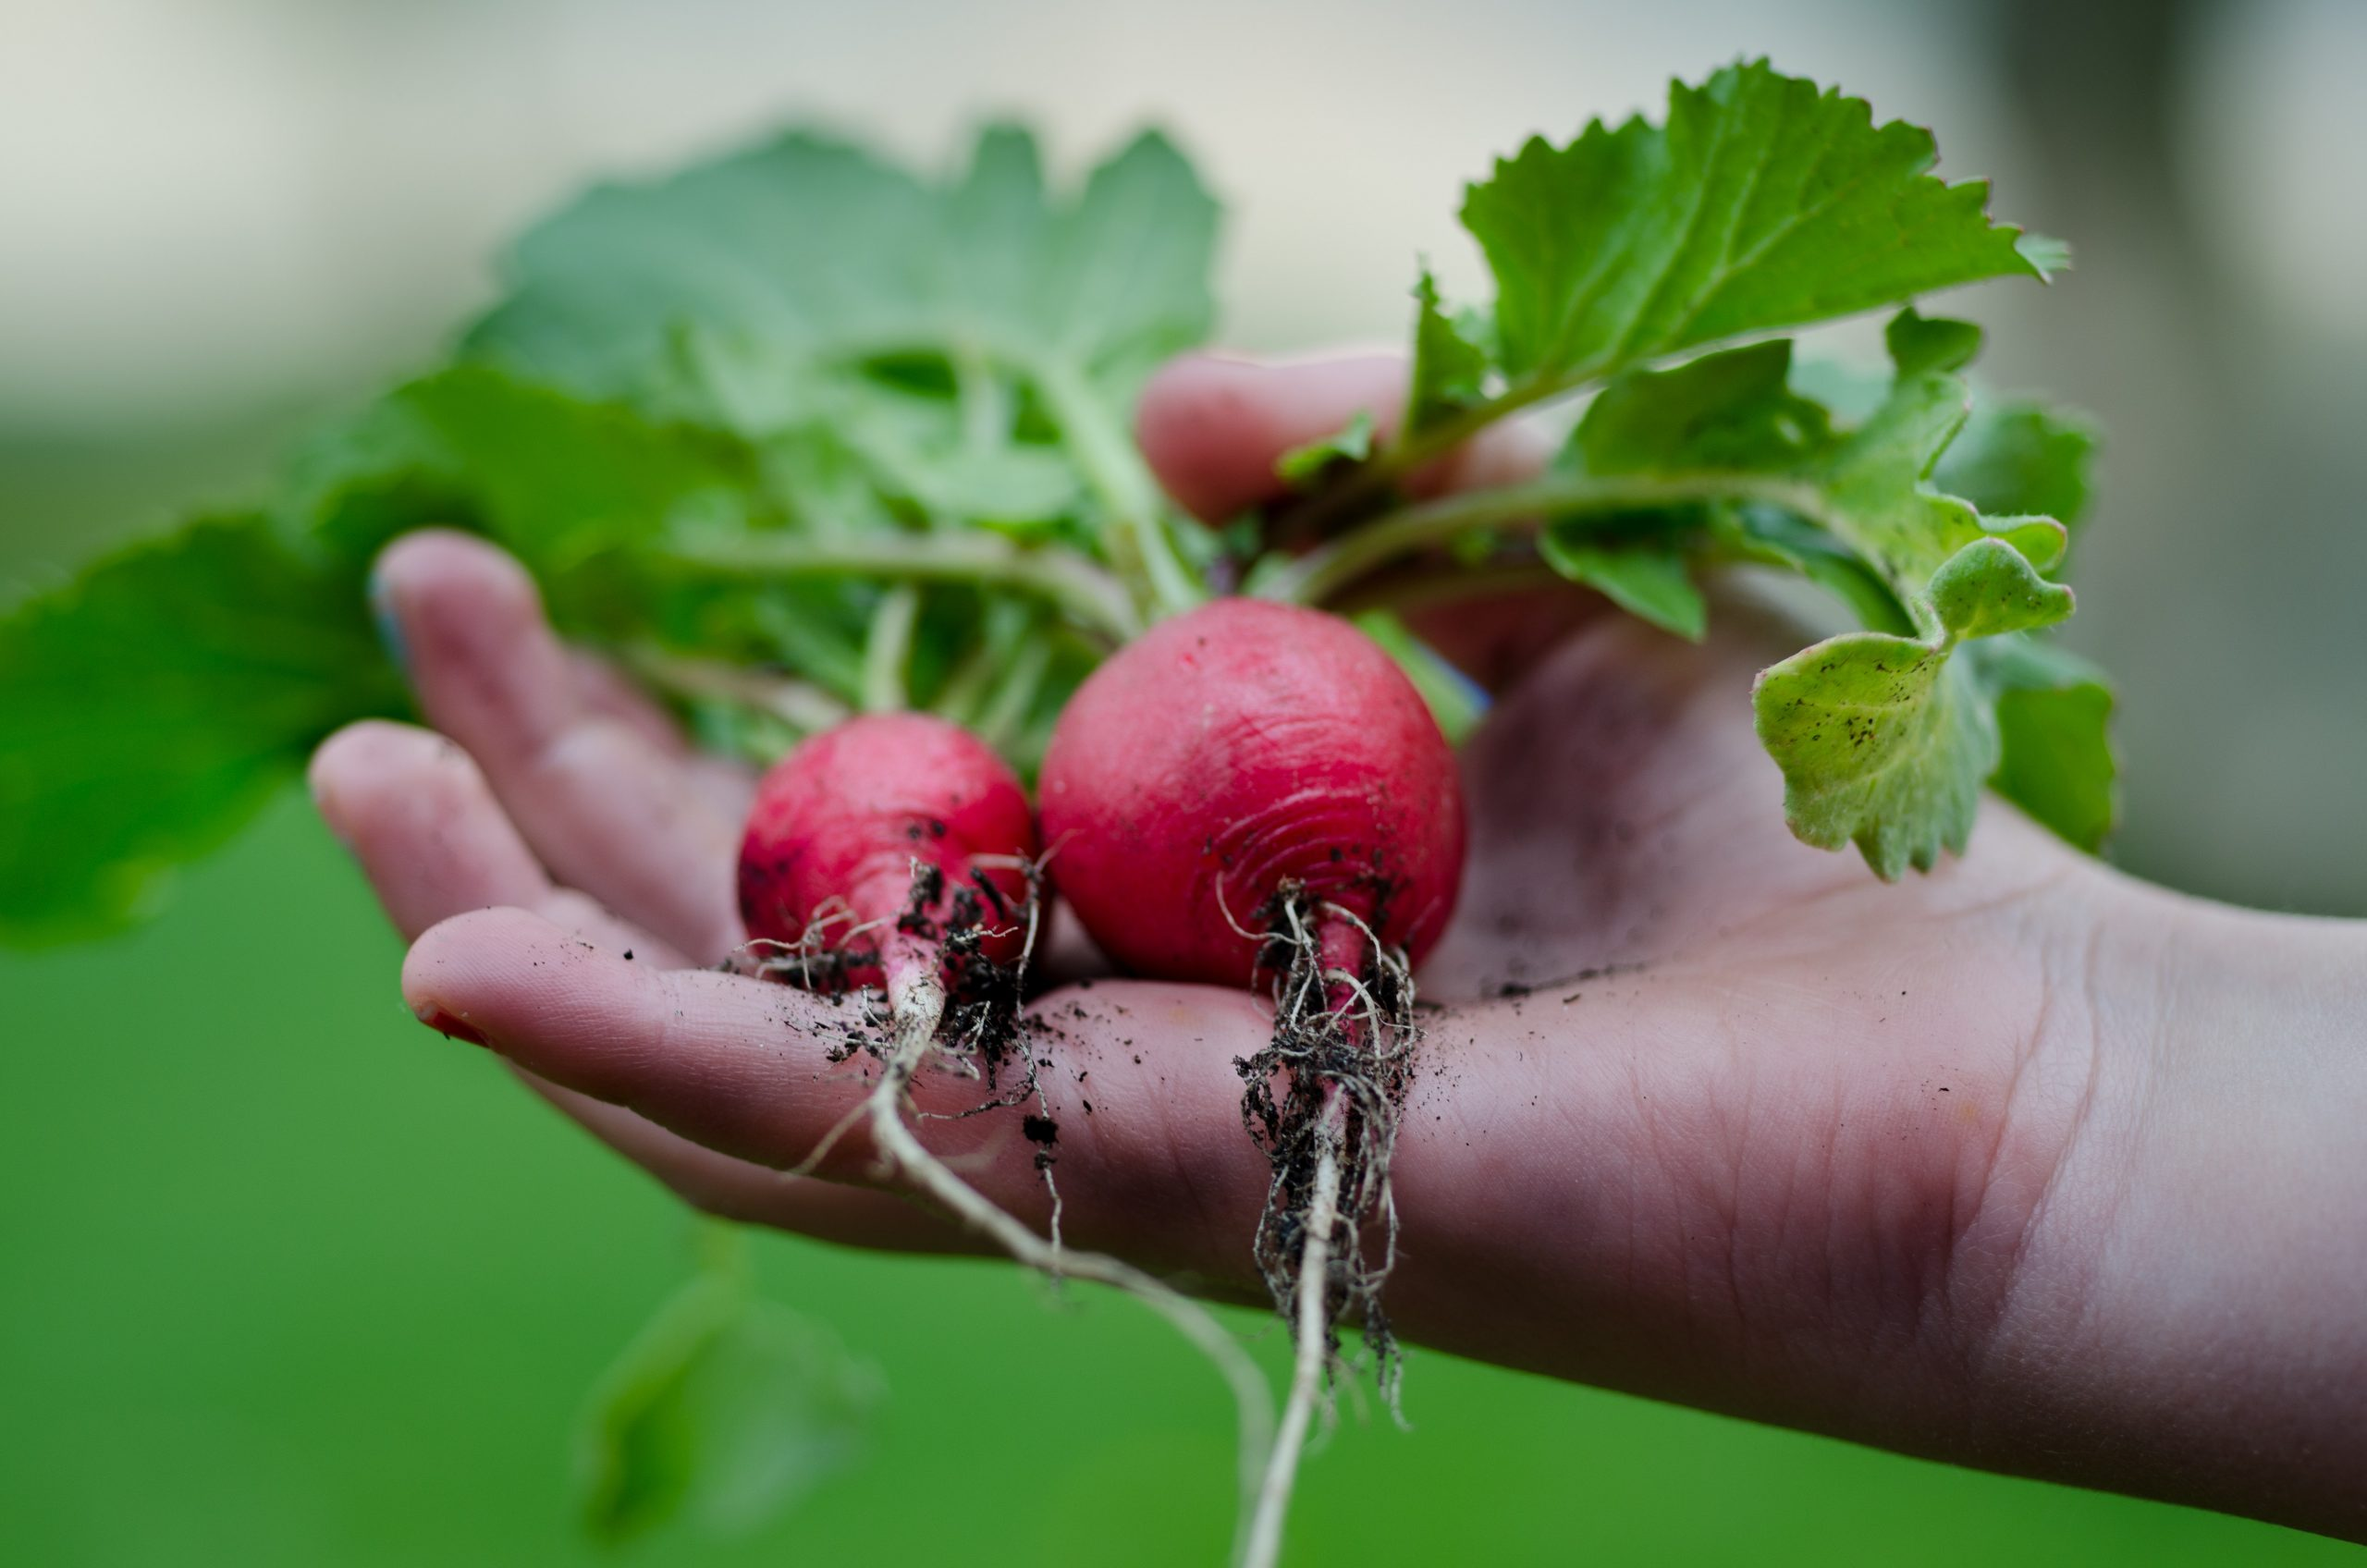 Better Gardening at Home with the Zero Waste Family